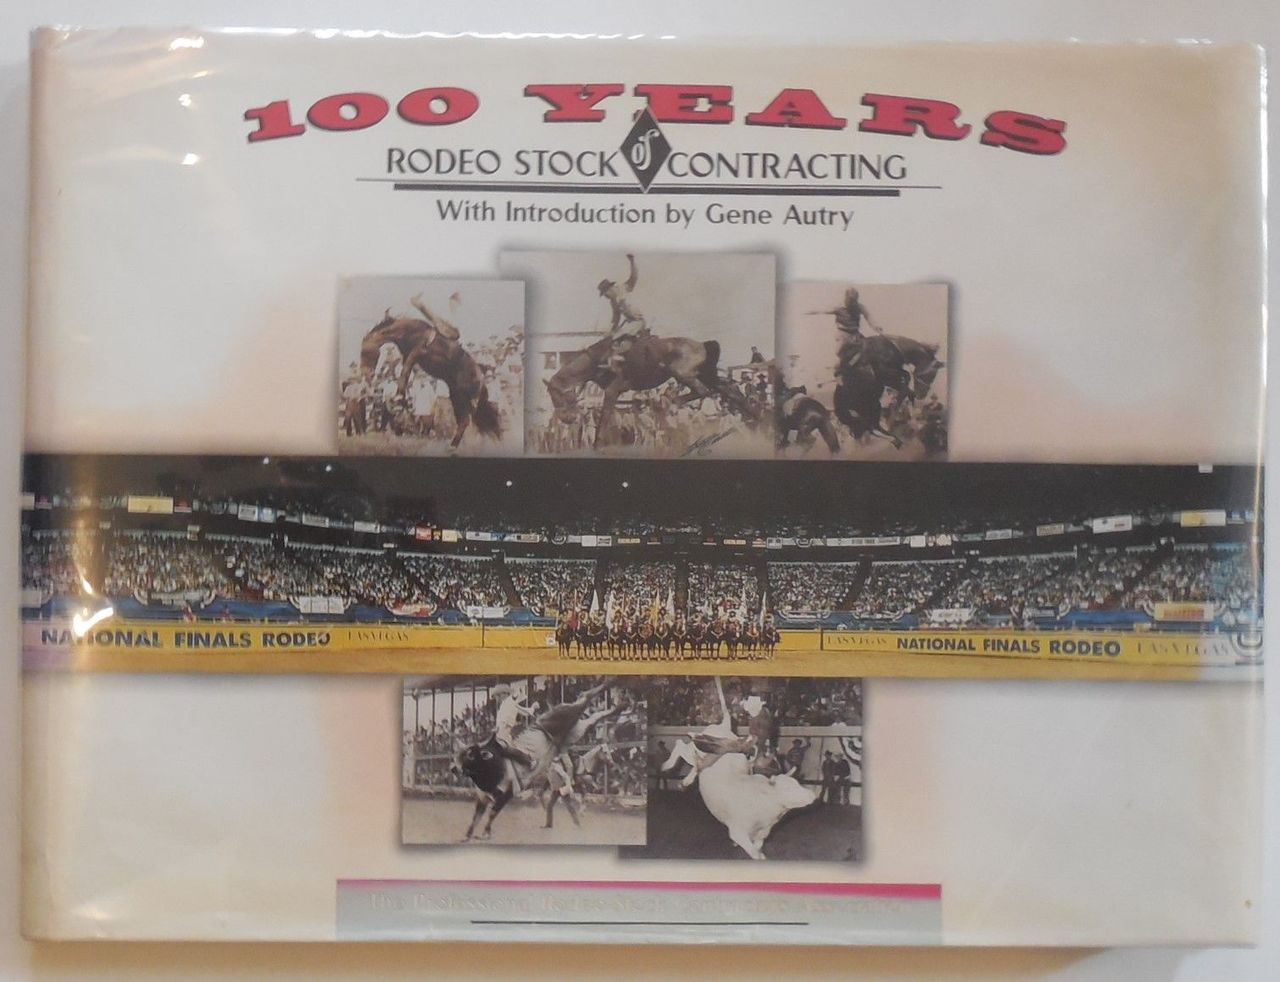 100 YEARS OF RODEO STOCK CONTRACTING, by V.C. Weiland - 1997